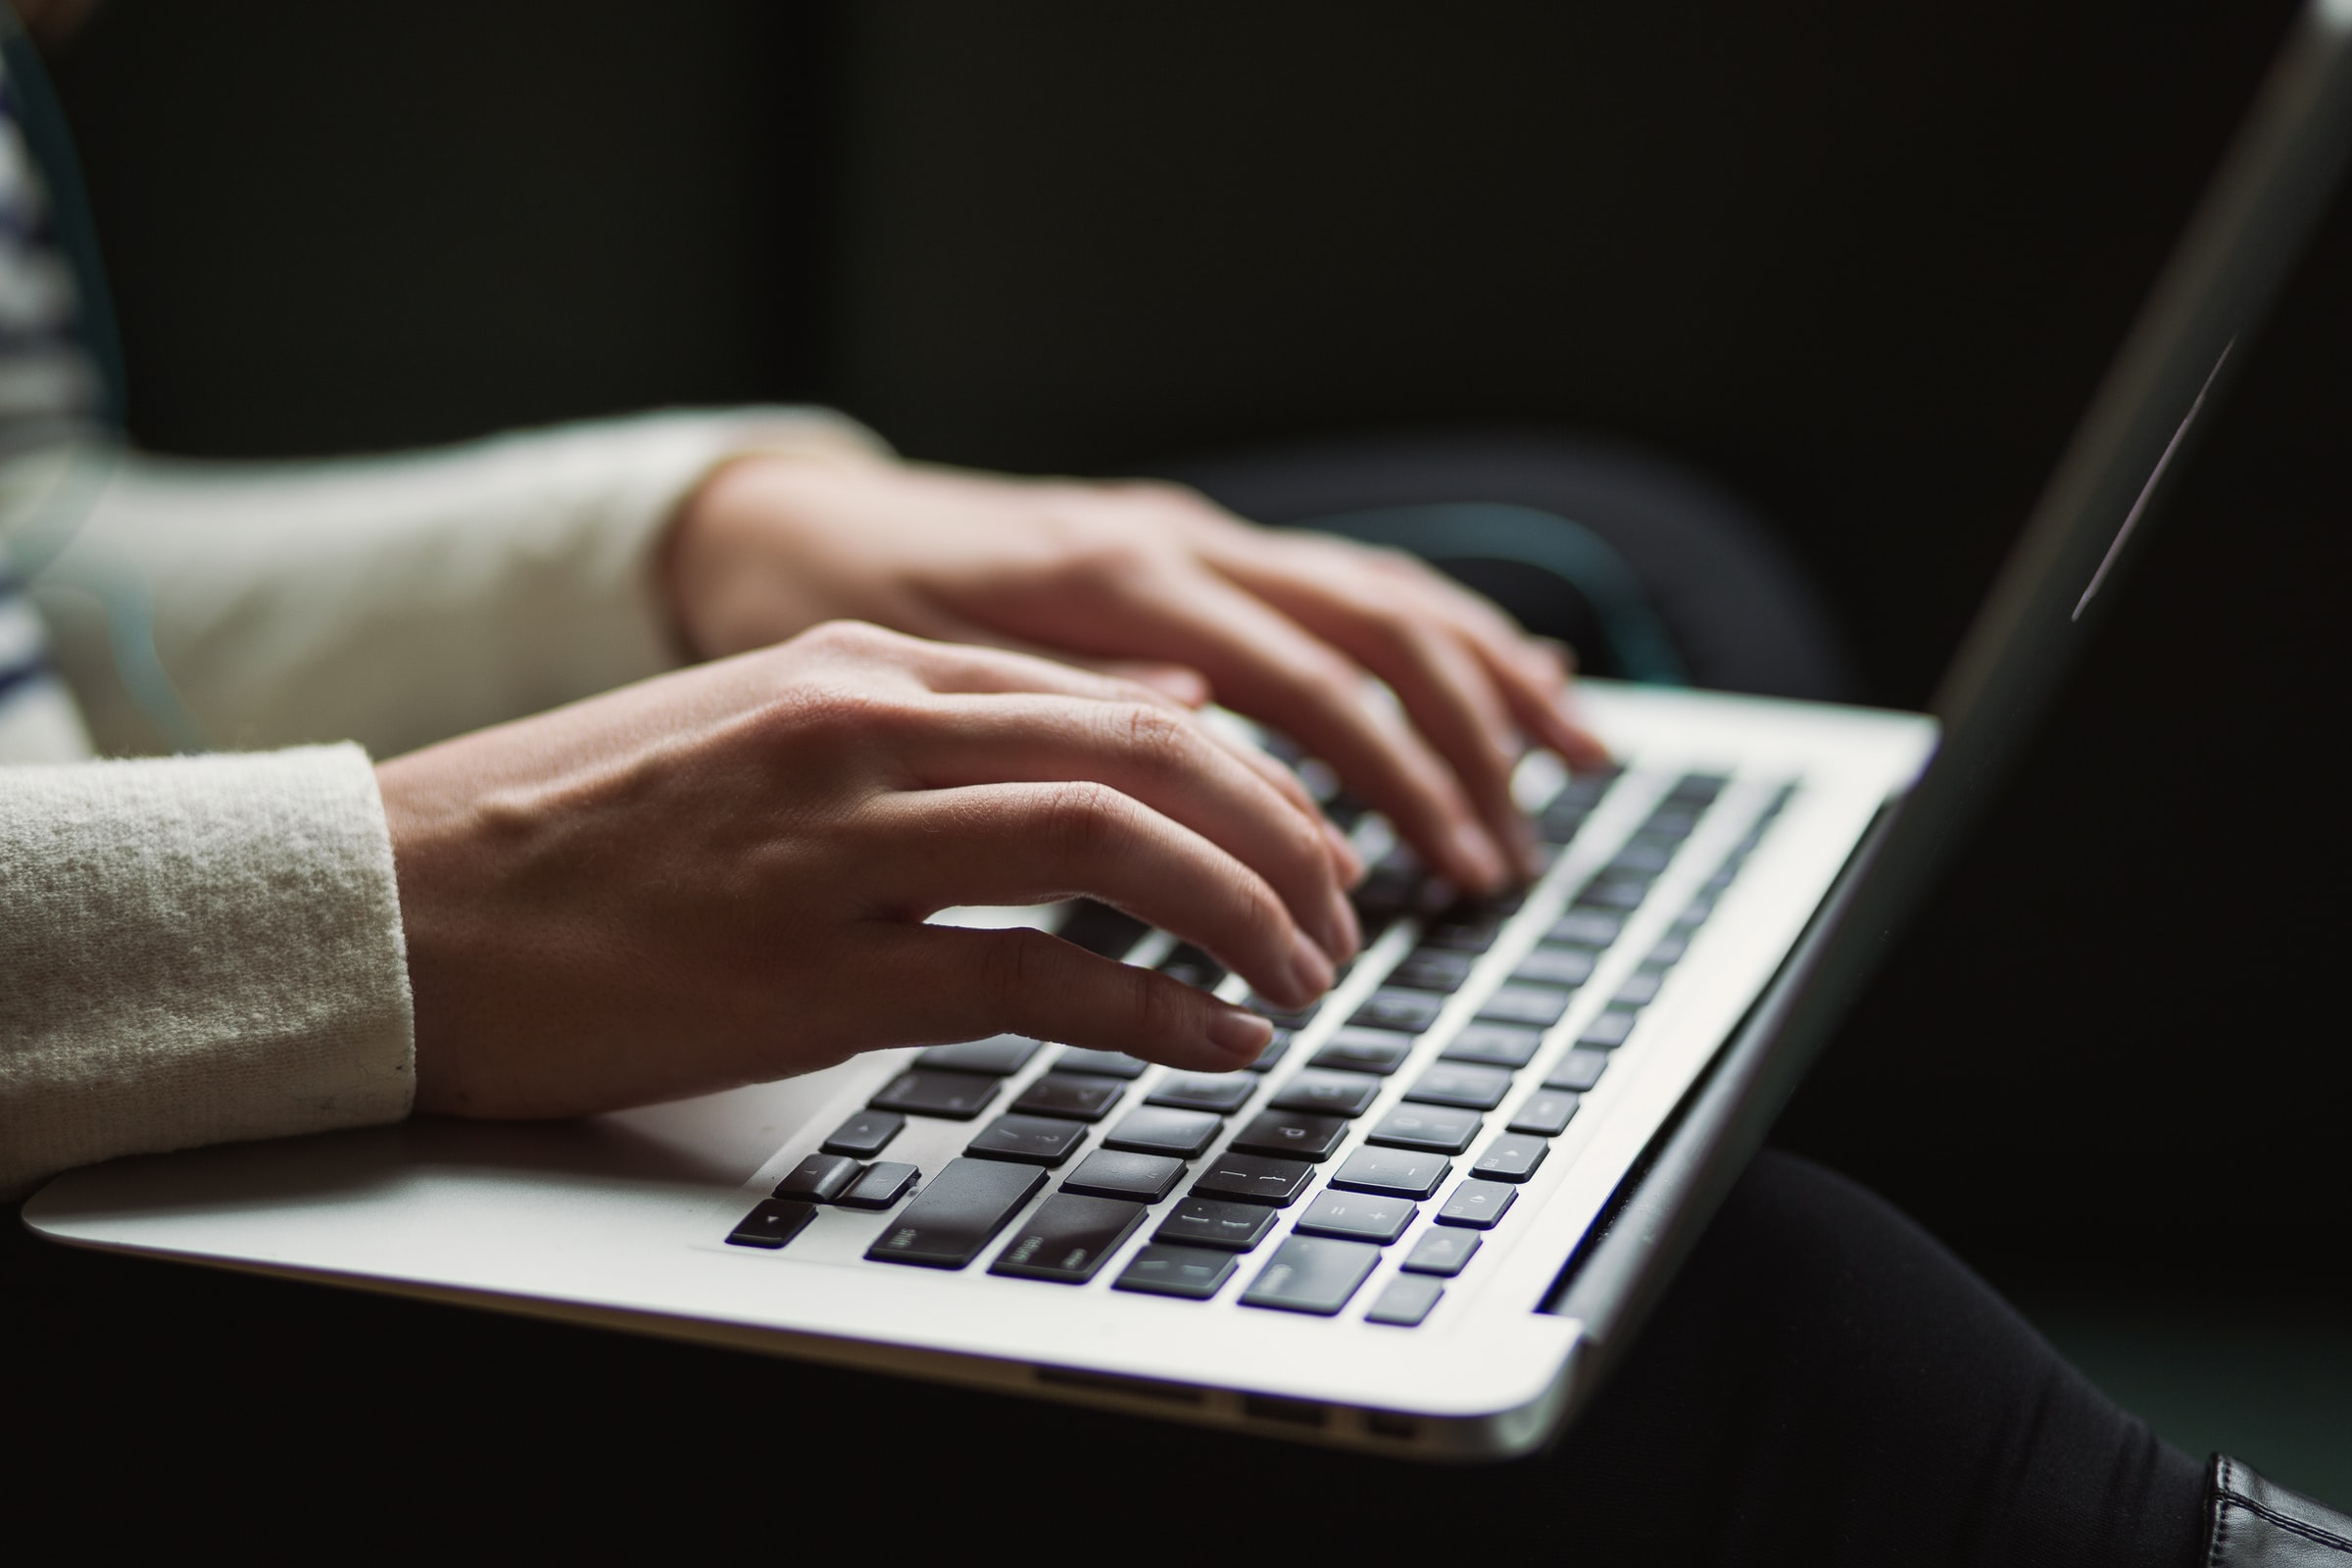 laptop sitting on a person's lap with hands over the keyboard